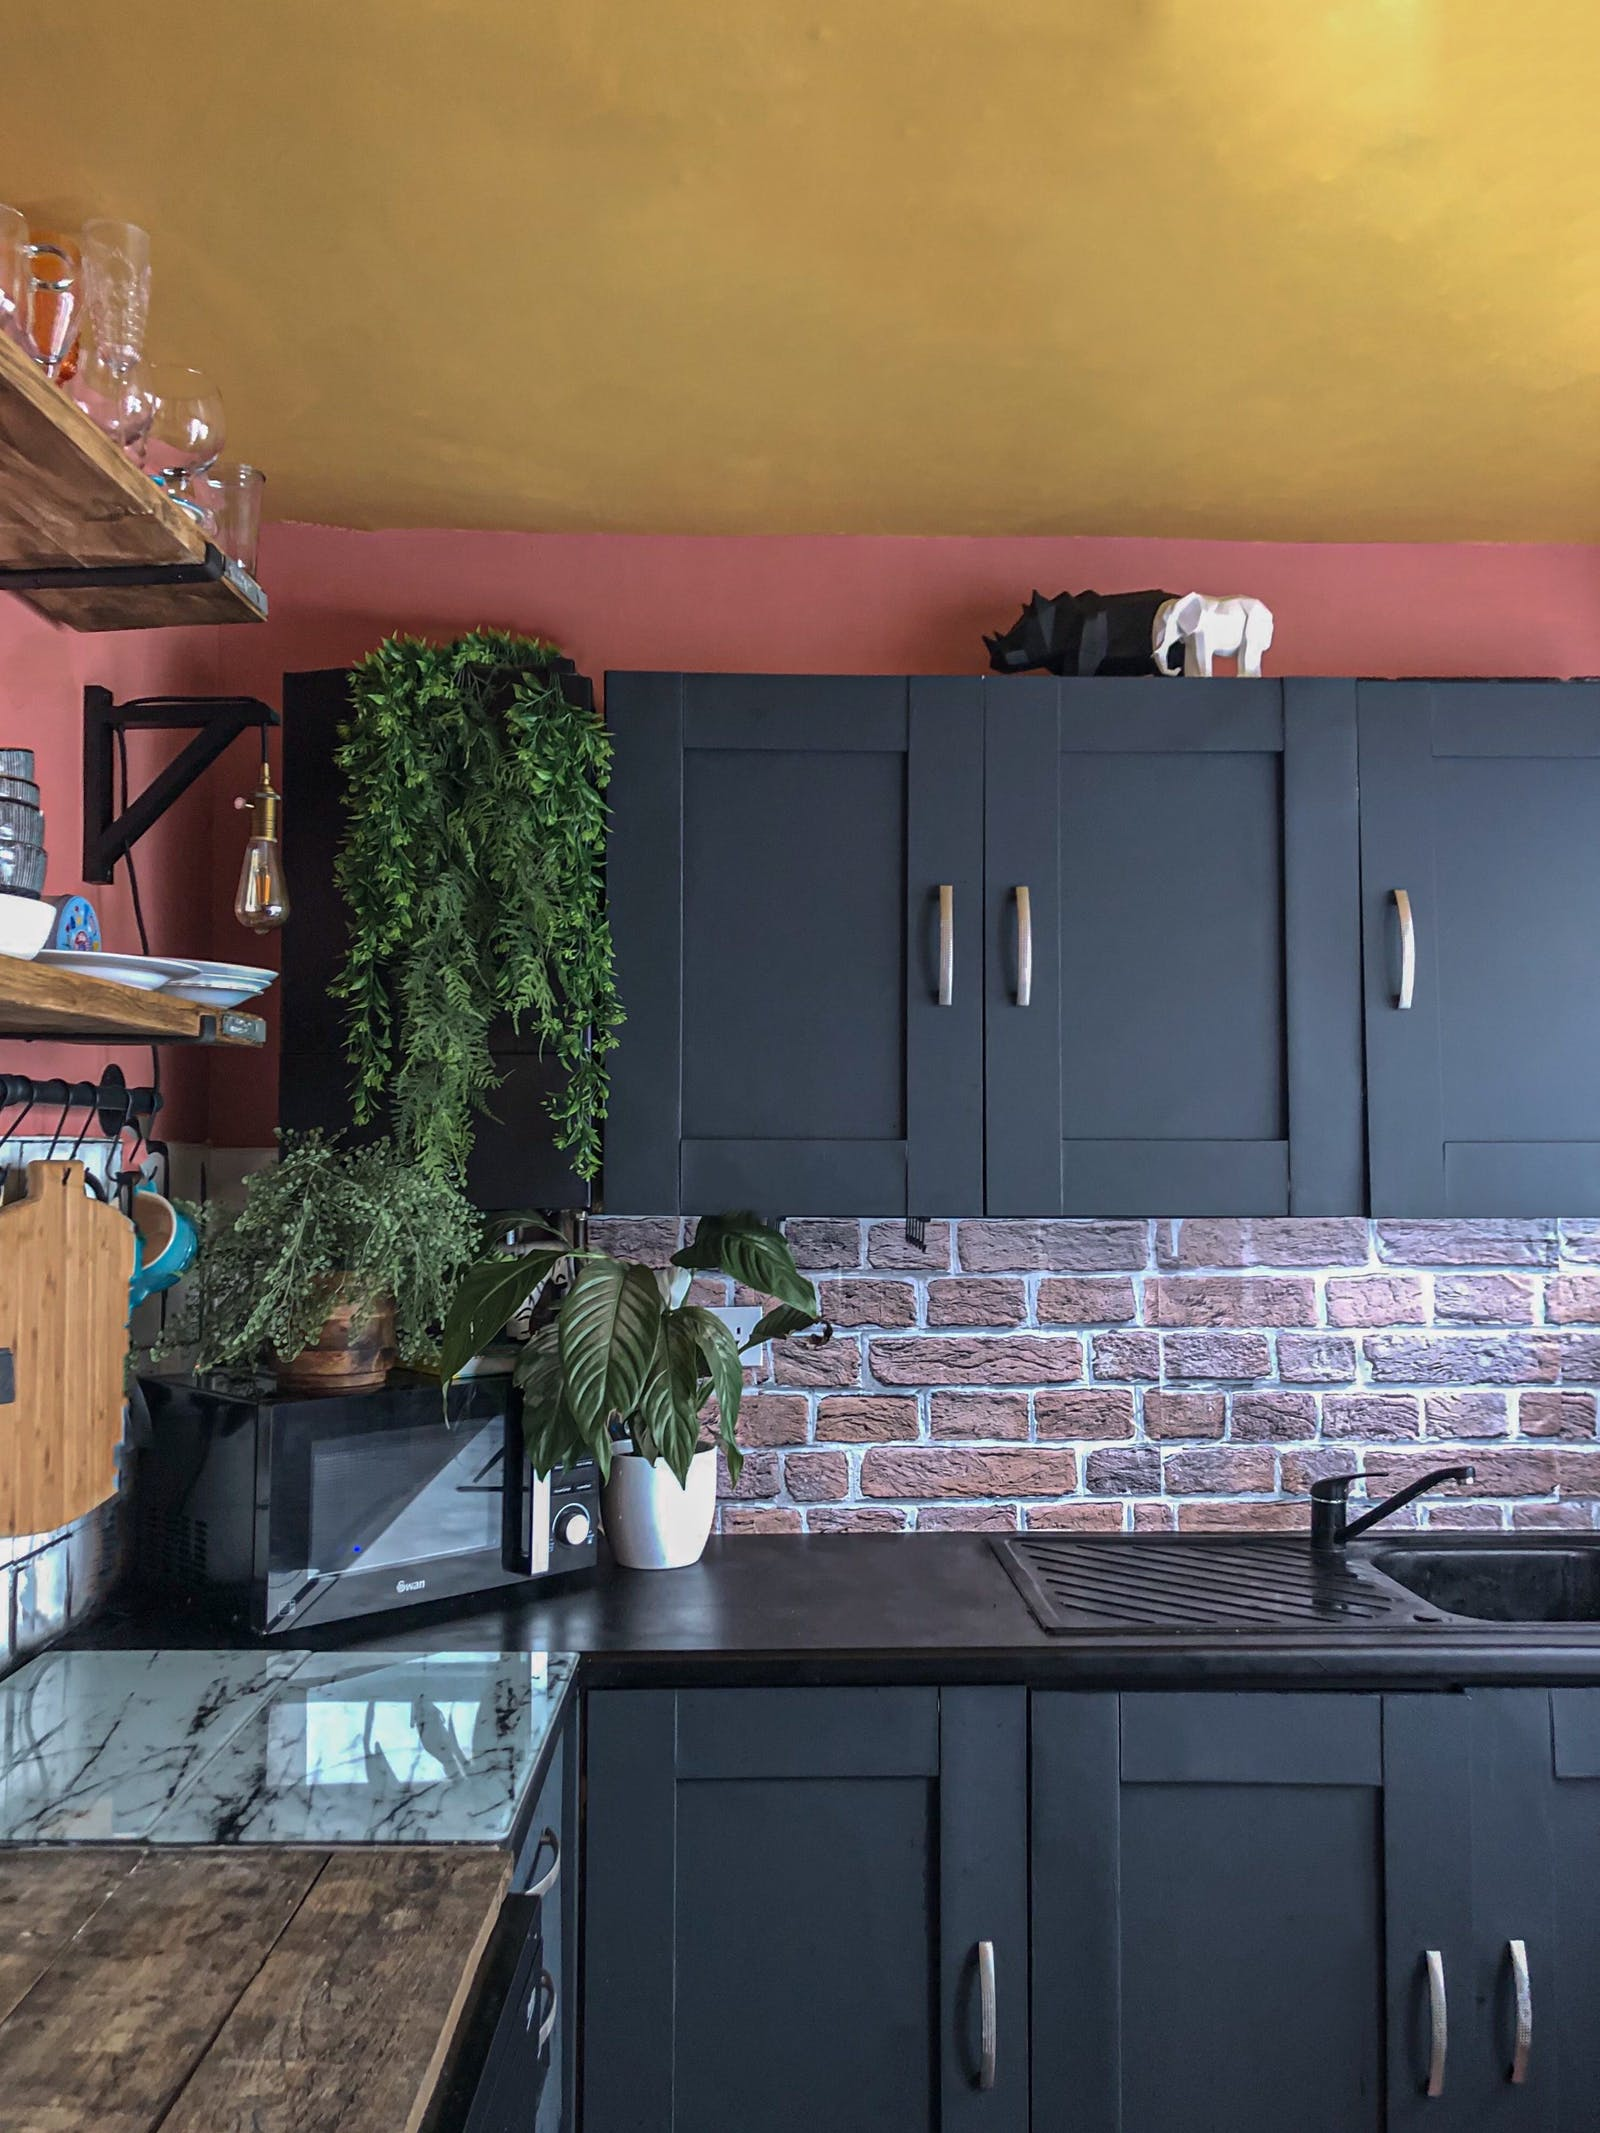 Kitchen painted in Black 01, Yellow 02 and Red 03